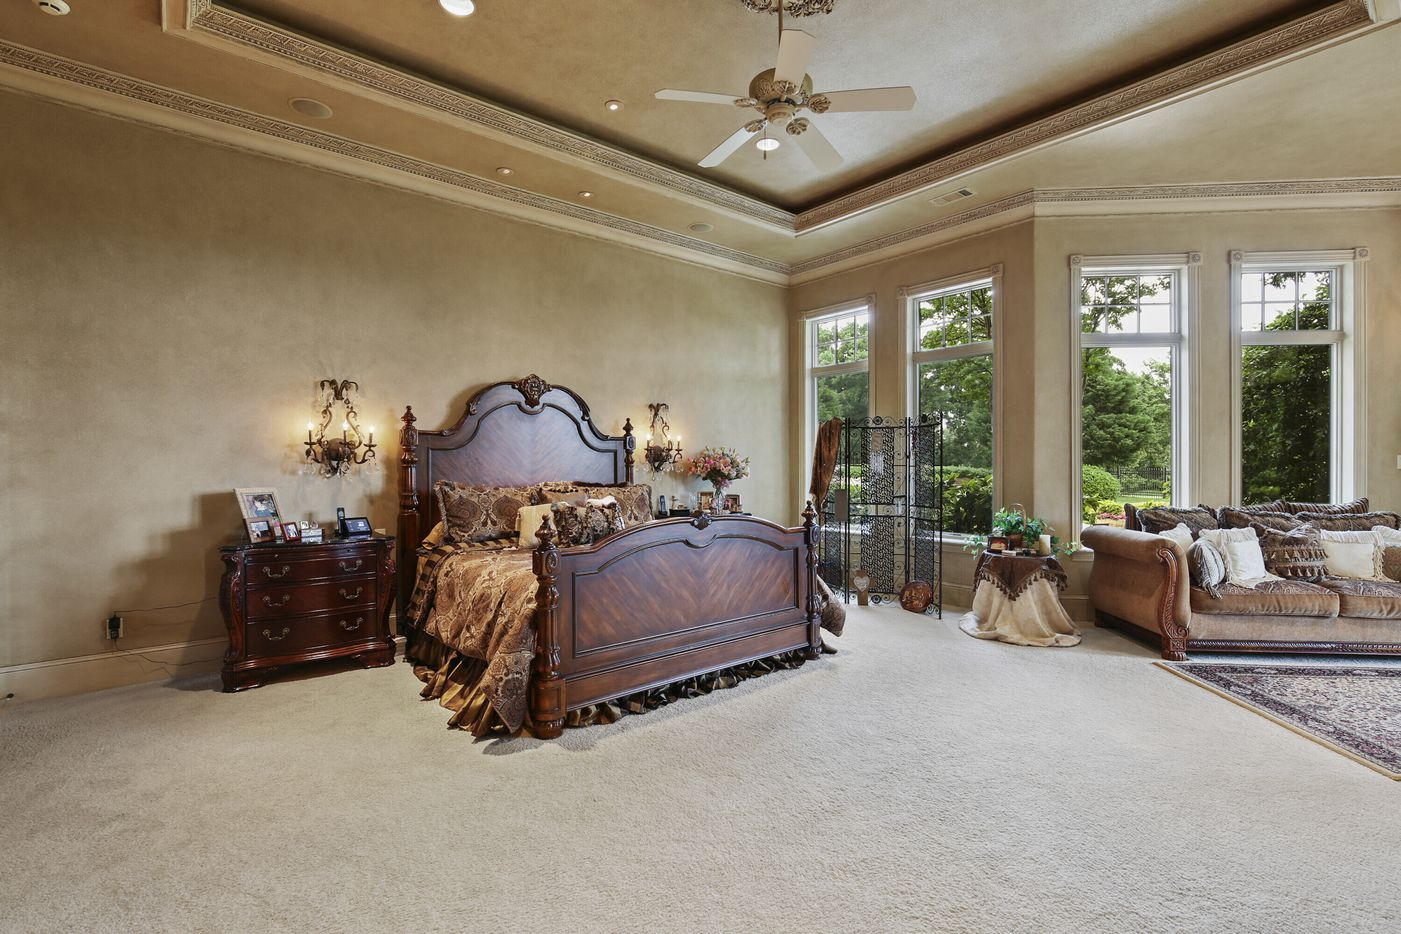 Take a look at the home at 5700 Masters Court in Flower Mound.